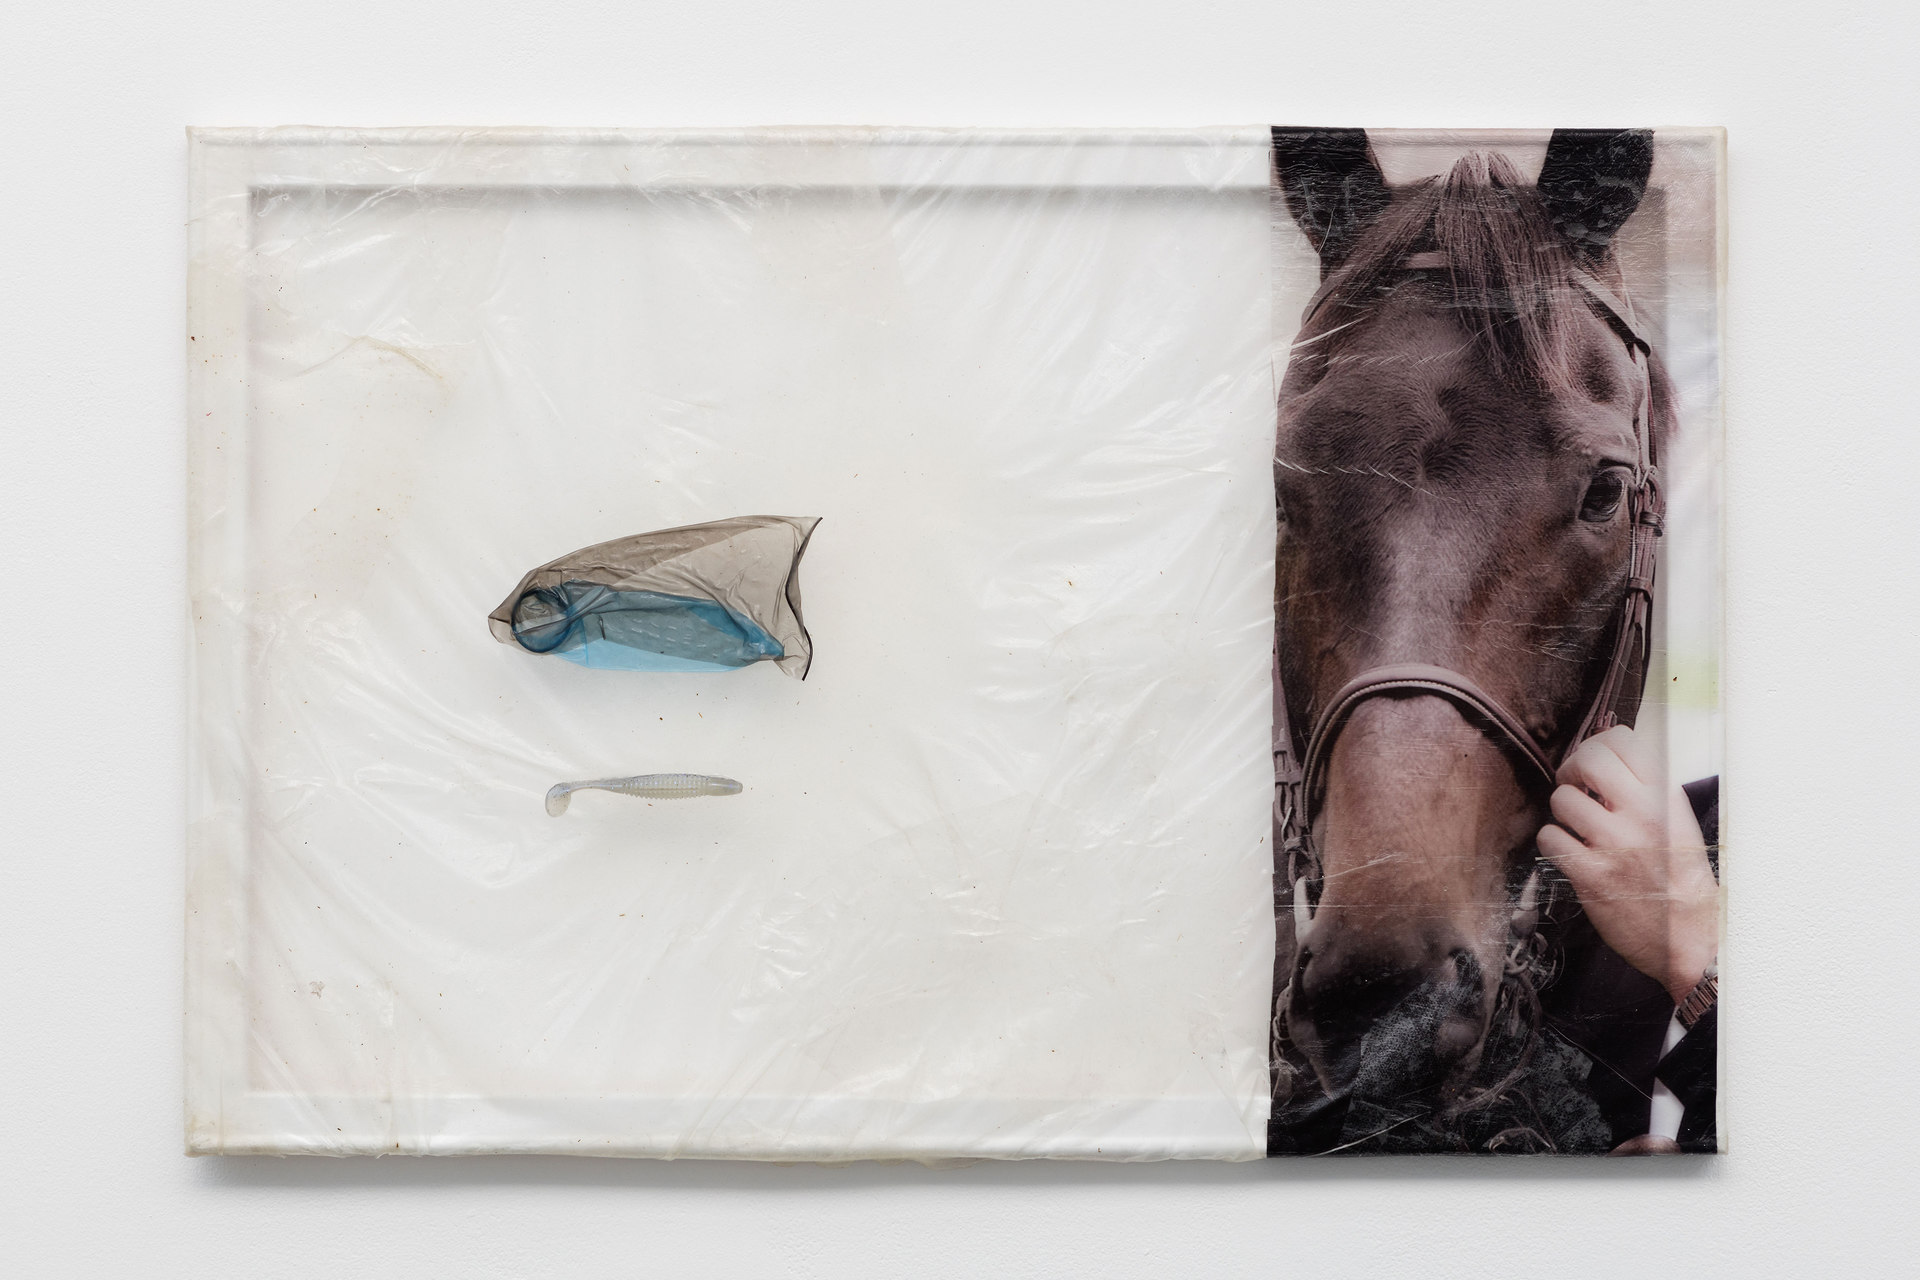 Aude Pariset, GREENHOUSES, 'Stallion Dad', Bioplastic, UV print on bioplastic, condoms, fish bait, wood, paint, 60 x 90cm, 2016, Cell Project Space